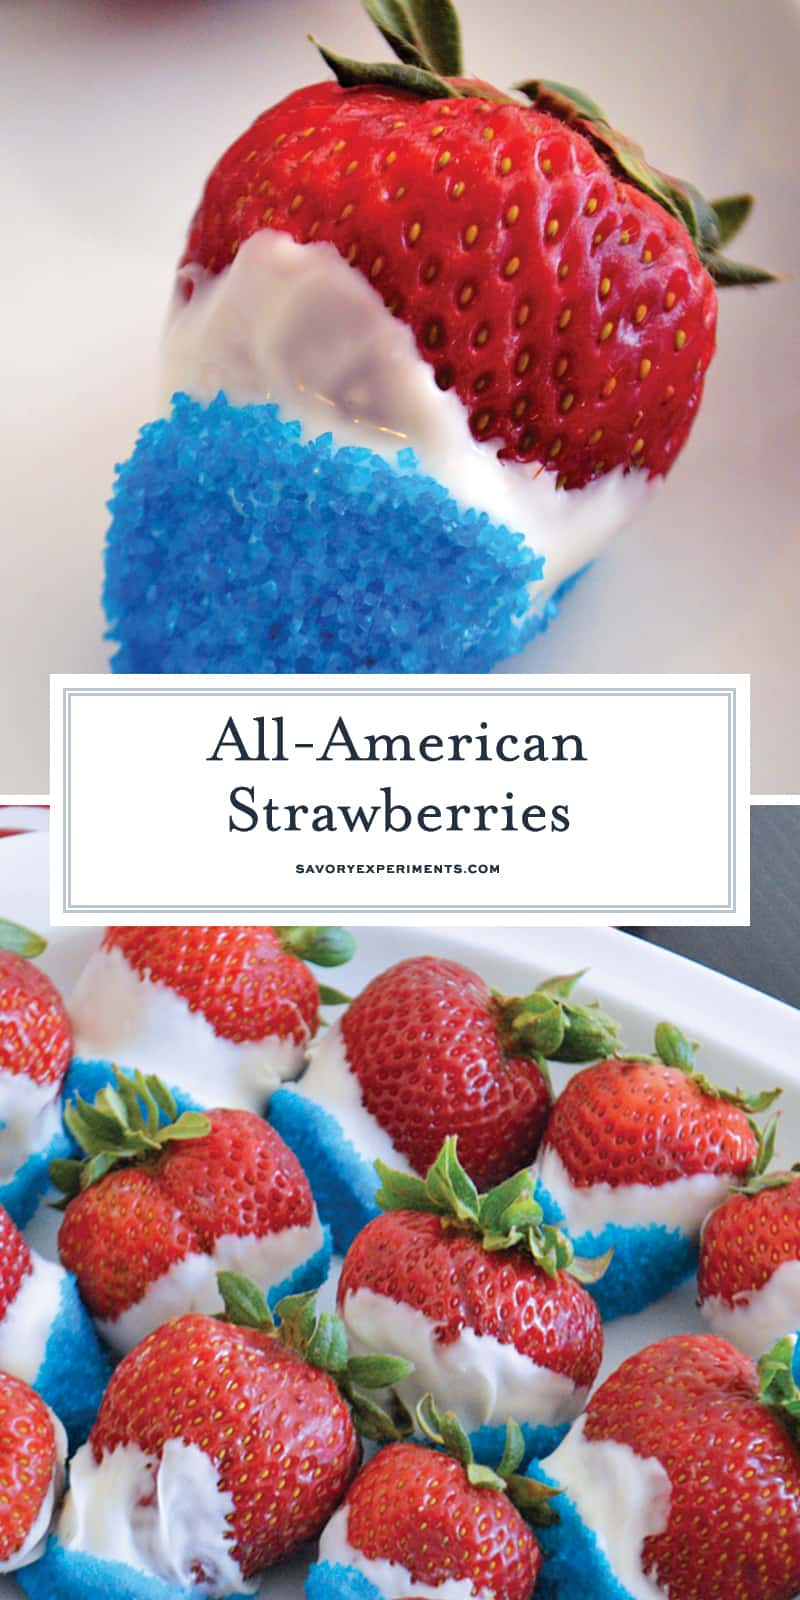 These All-American Strawberries are a fun, festive, mouth-watering take on the traditional chocolate covered strawberry and only take 15 minutes to prepare! #allamericanstrawberries #chocolatecoveredstrawberries #allamerican www.savoryexperiments.com